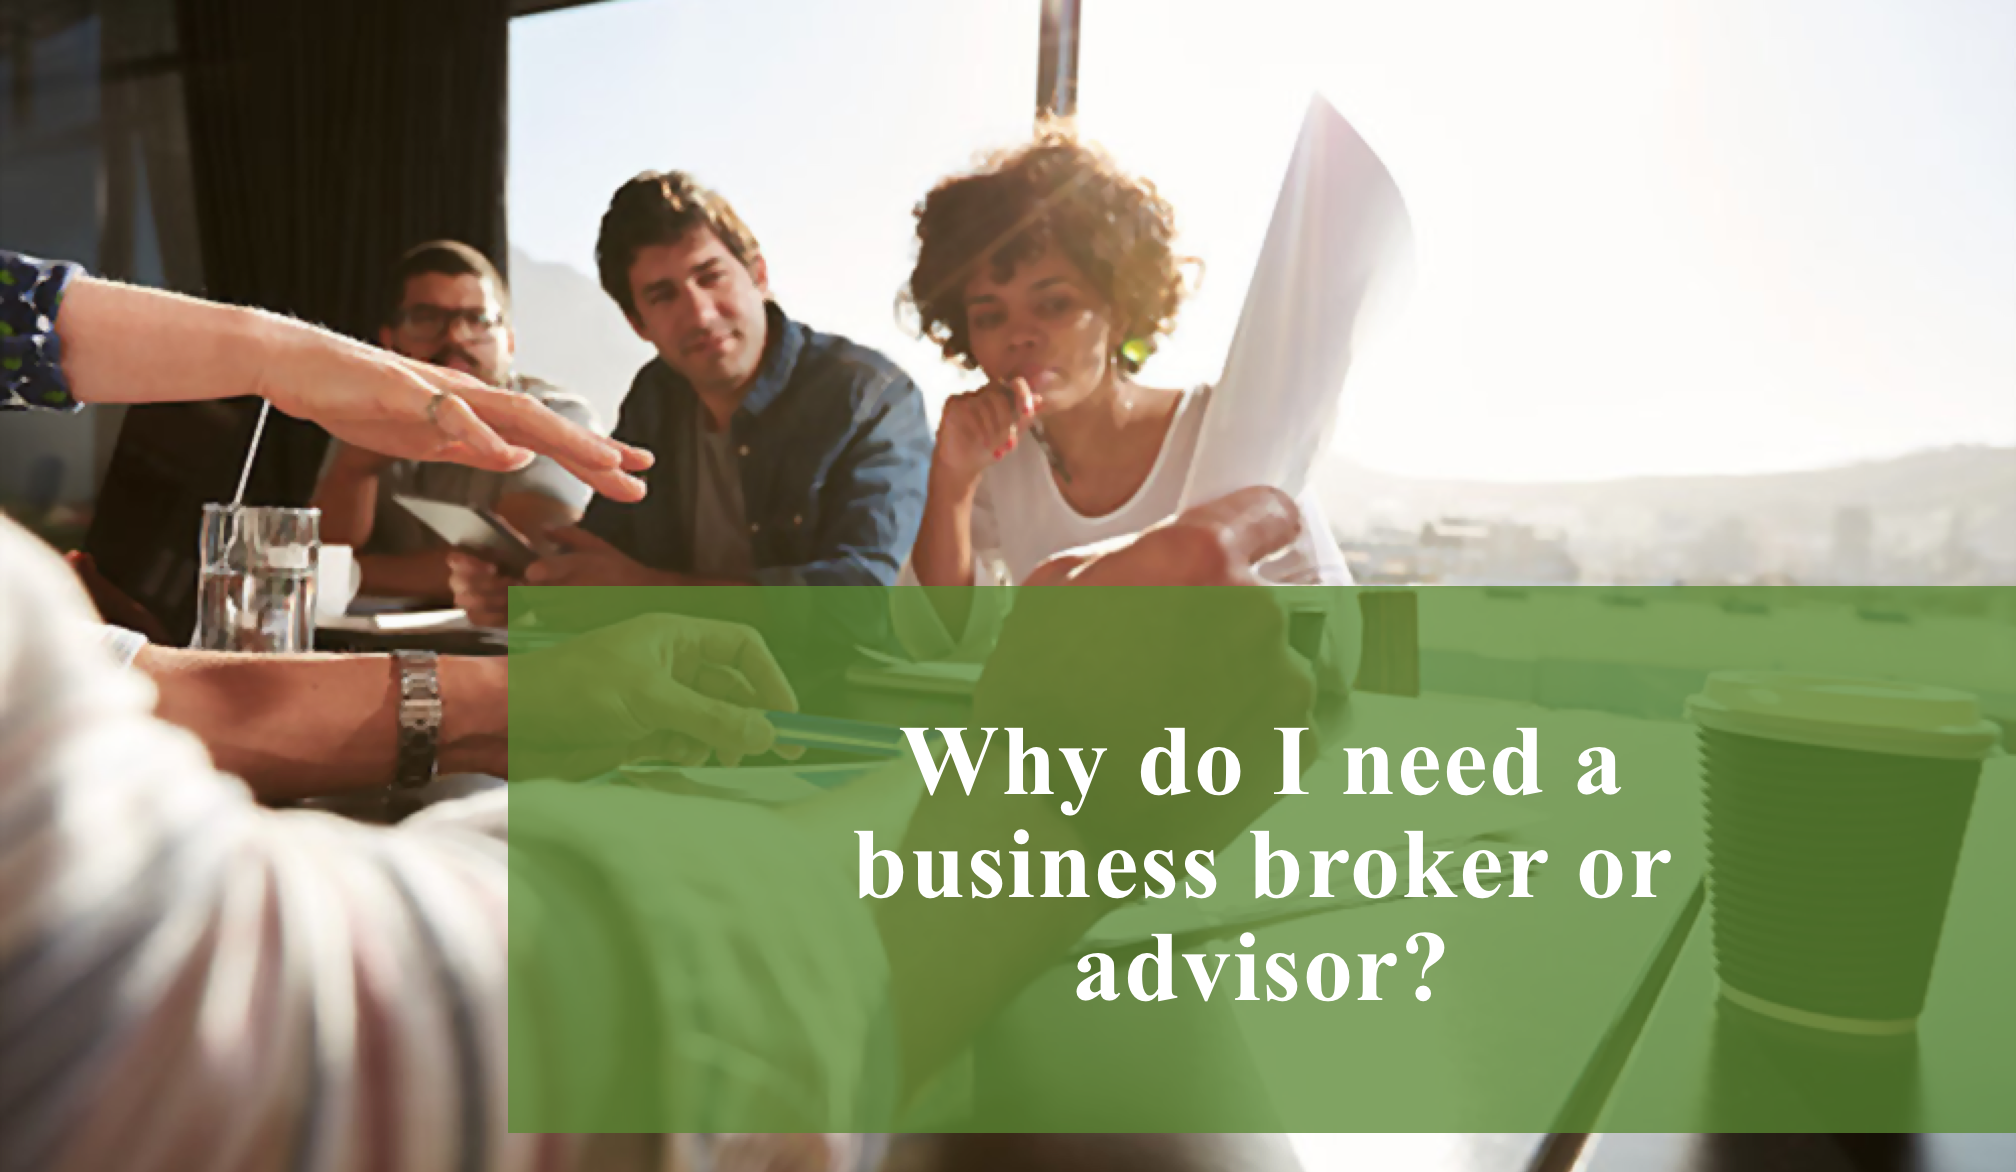 Why do I need a business broker or advisor?